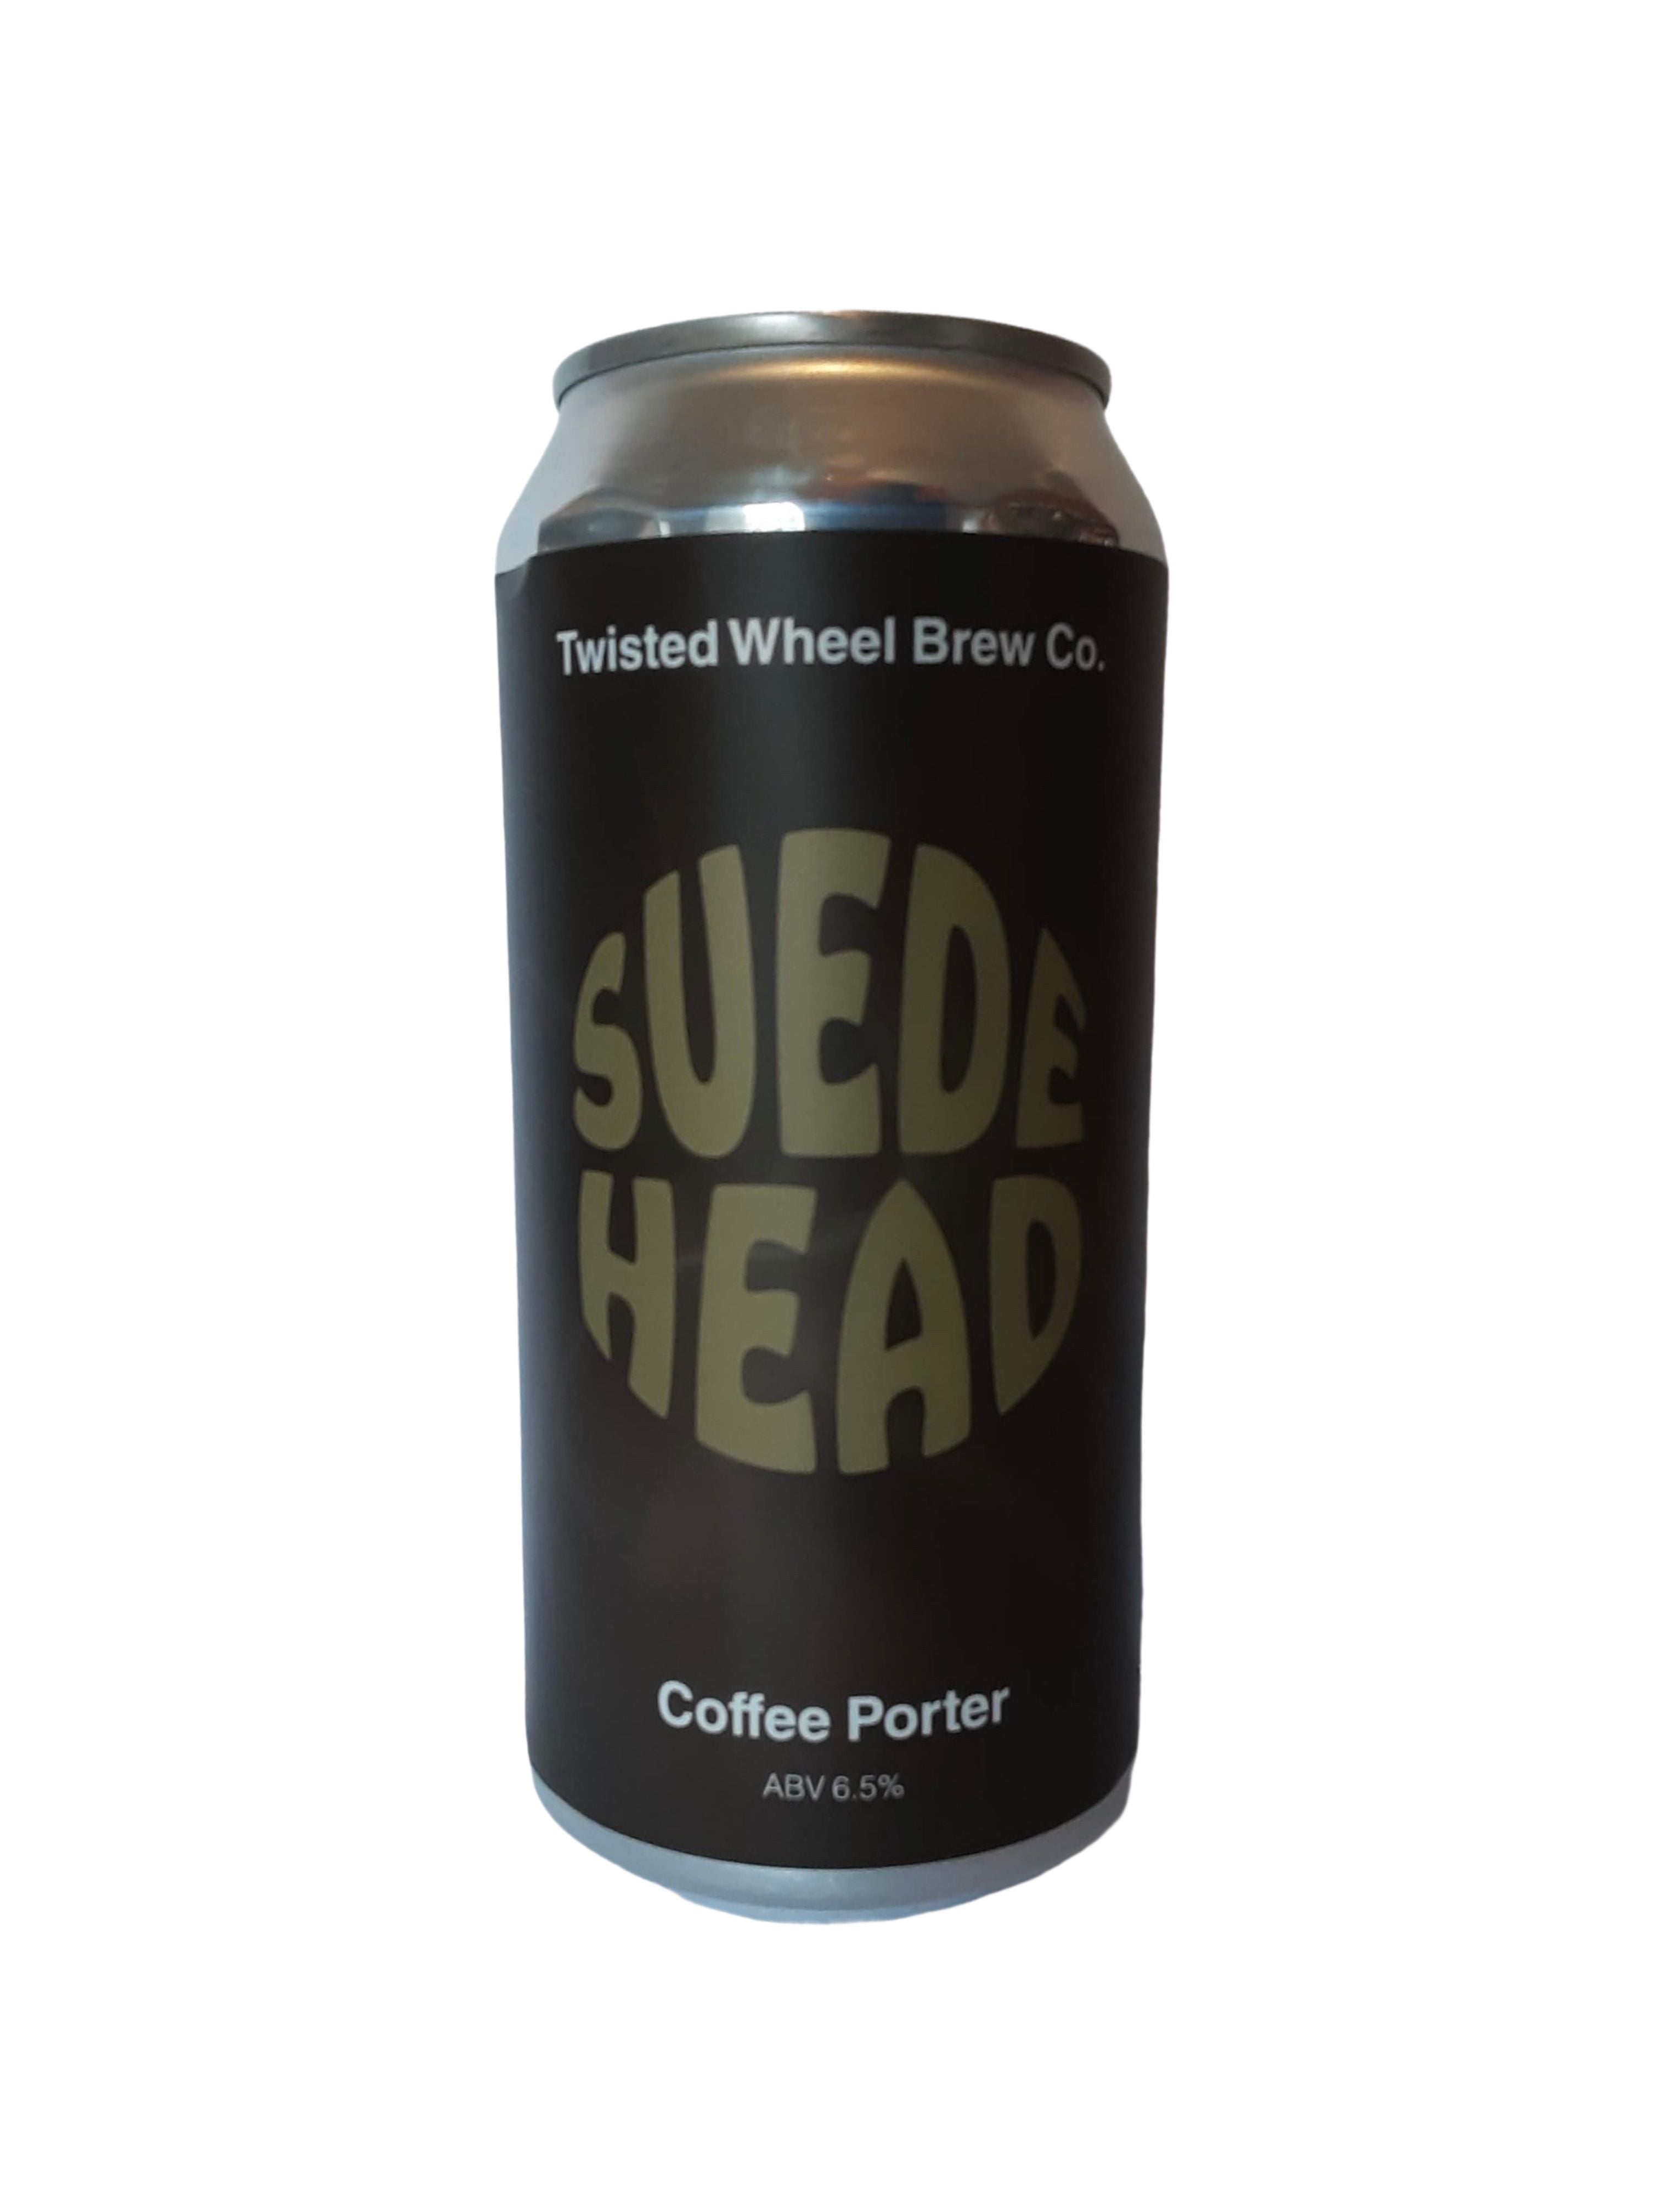 Twisted Wheel - Suede Head - Porter - 6.5% (Brand New)